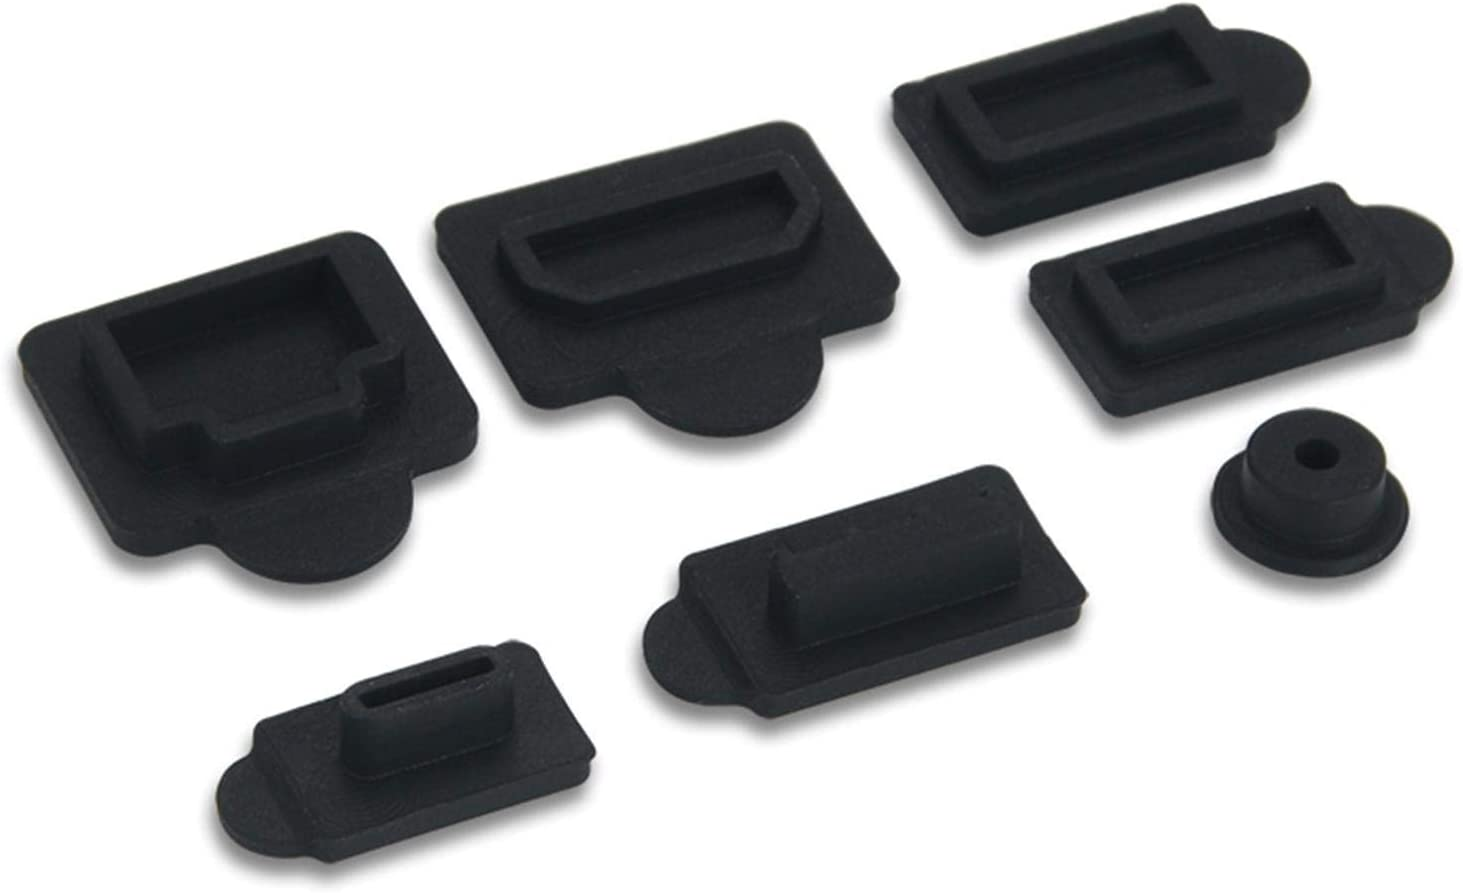 Amusingholiday Silicone Dust Plugs Anti-dust USB Set Los Angeles Mall Large discharge sale Interface